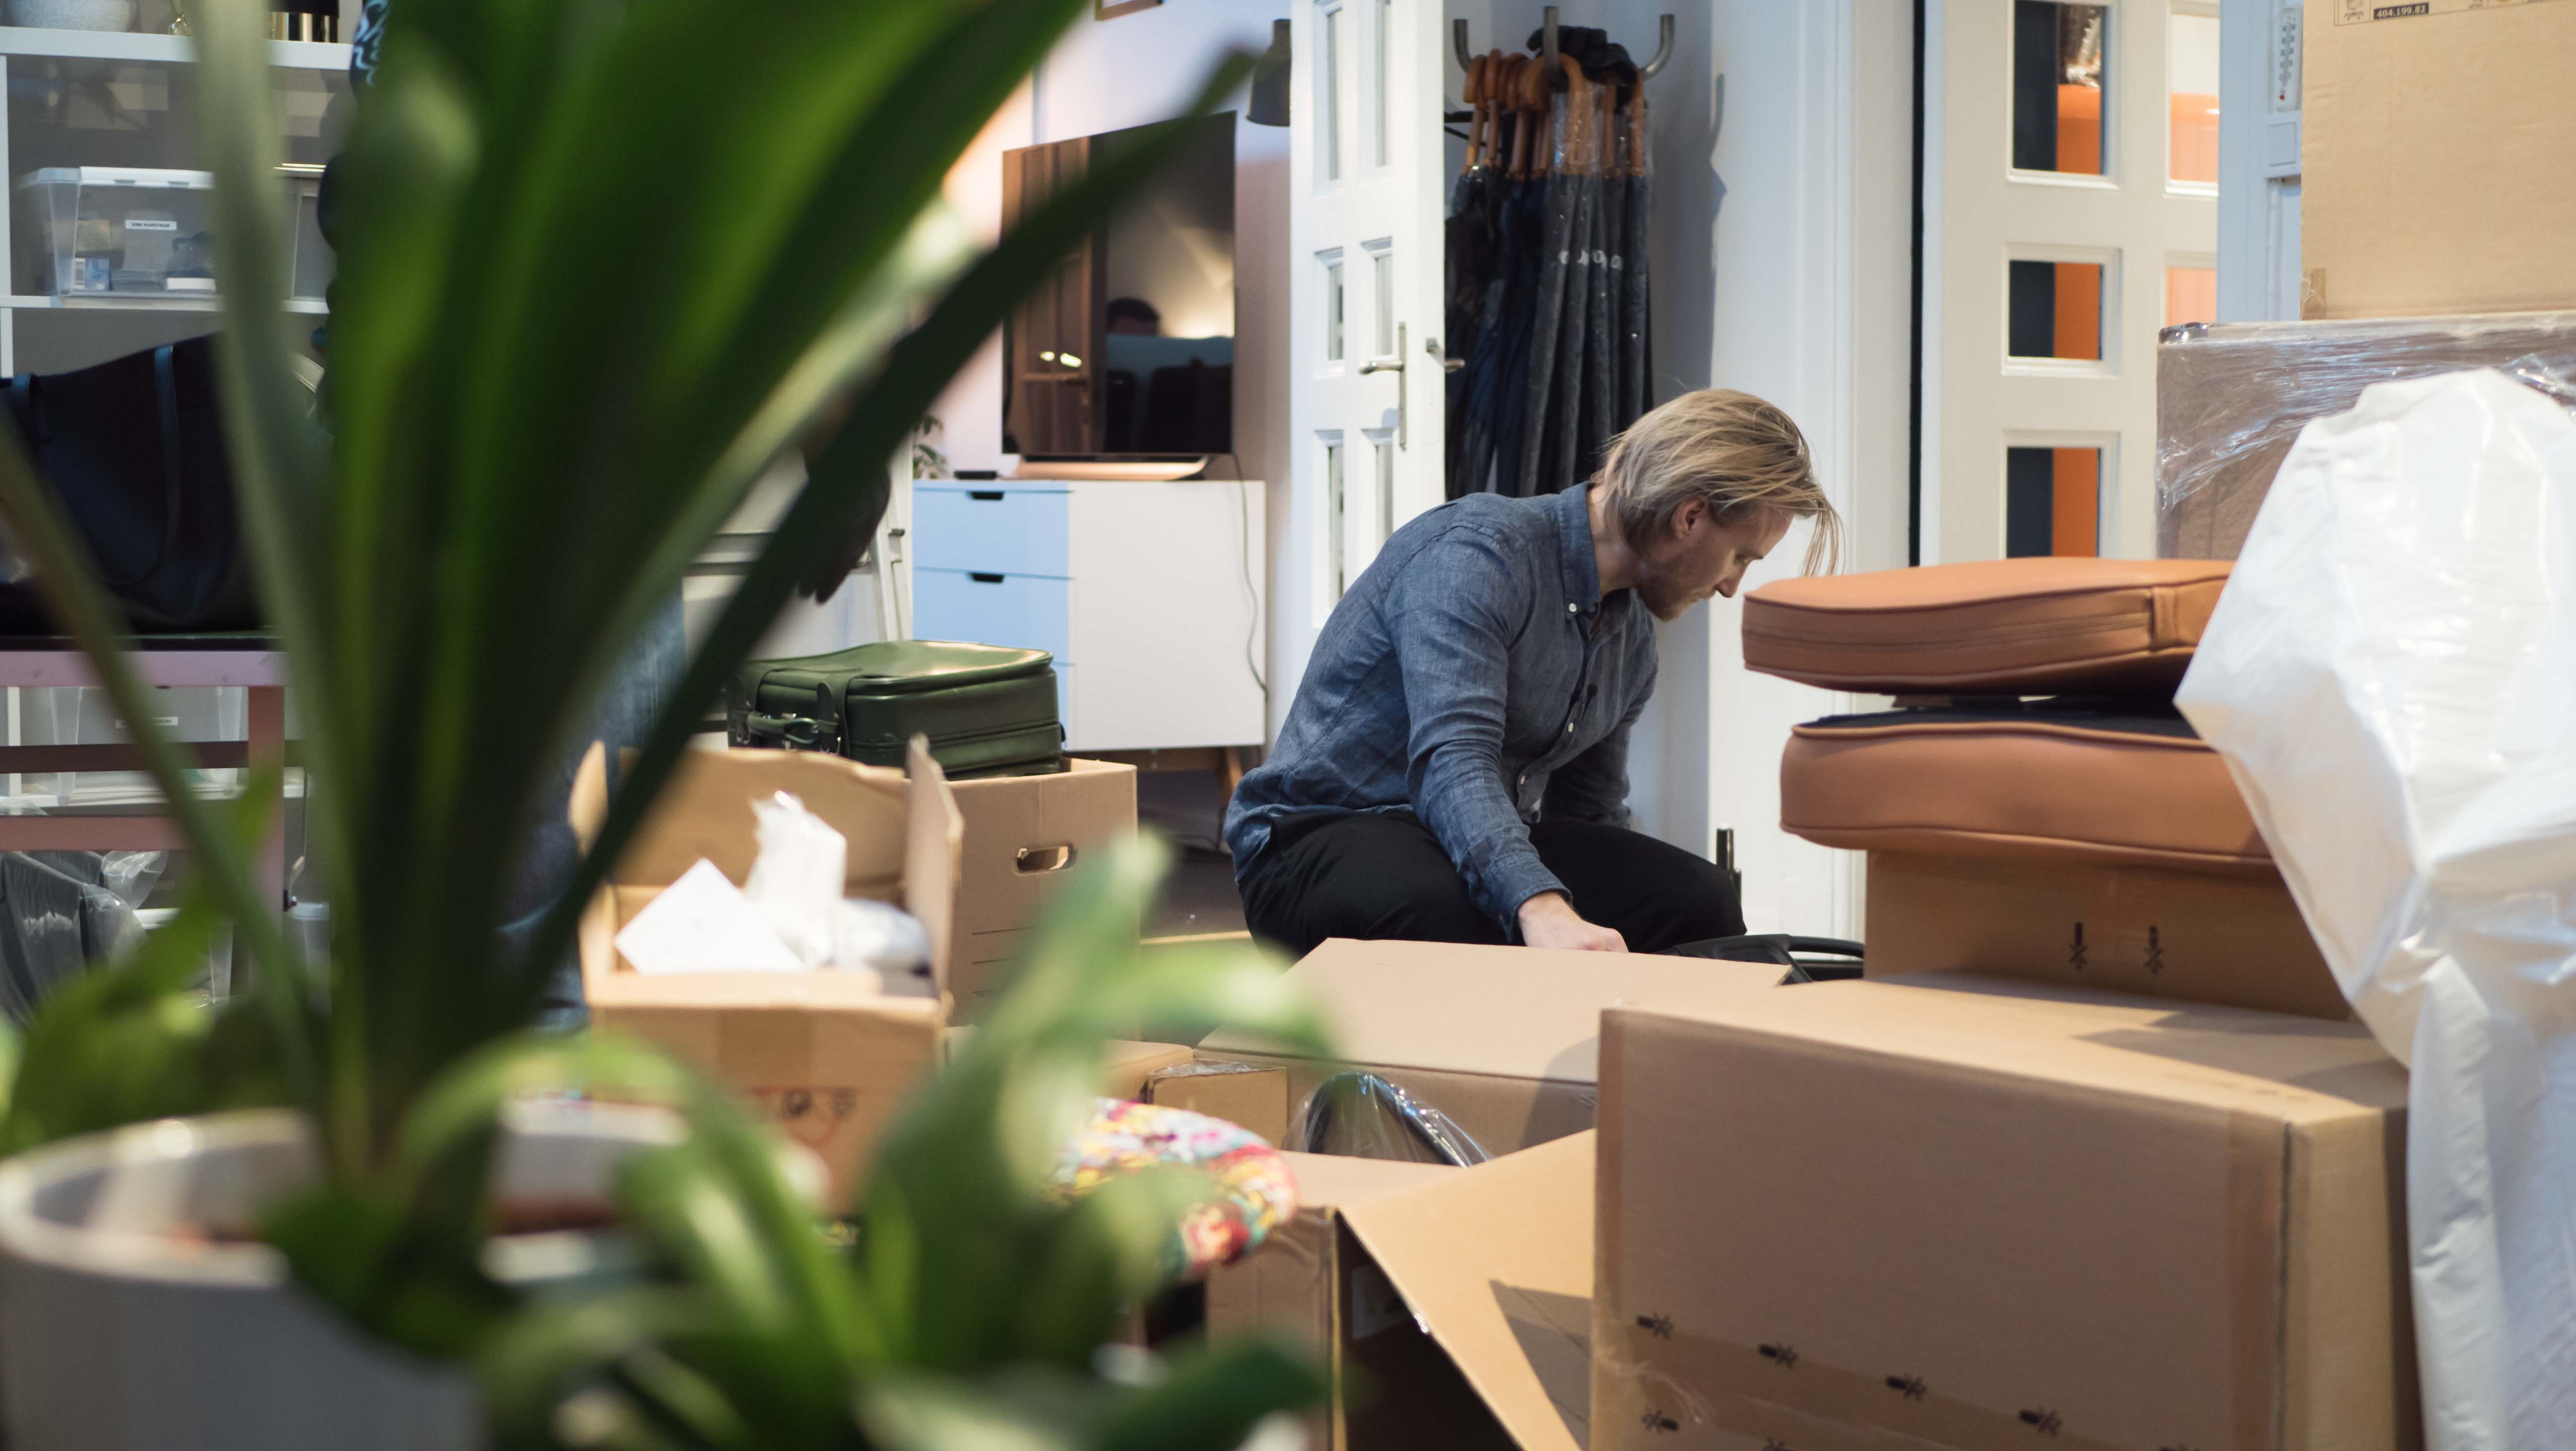 Mattias in the making of new office chairss